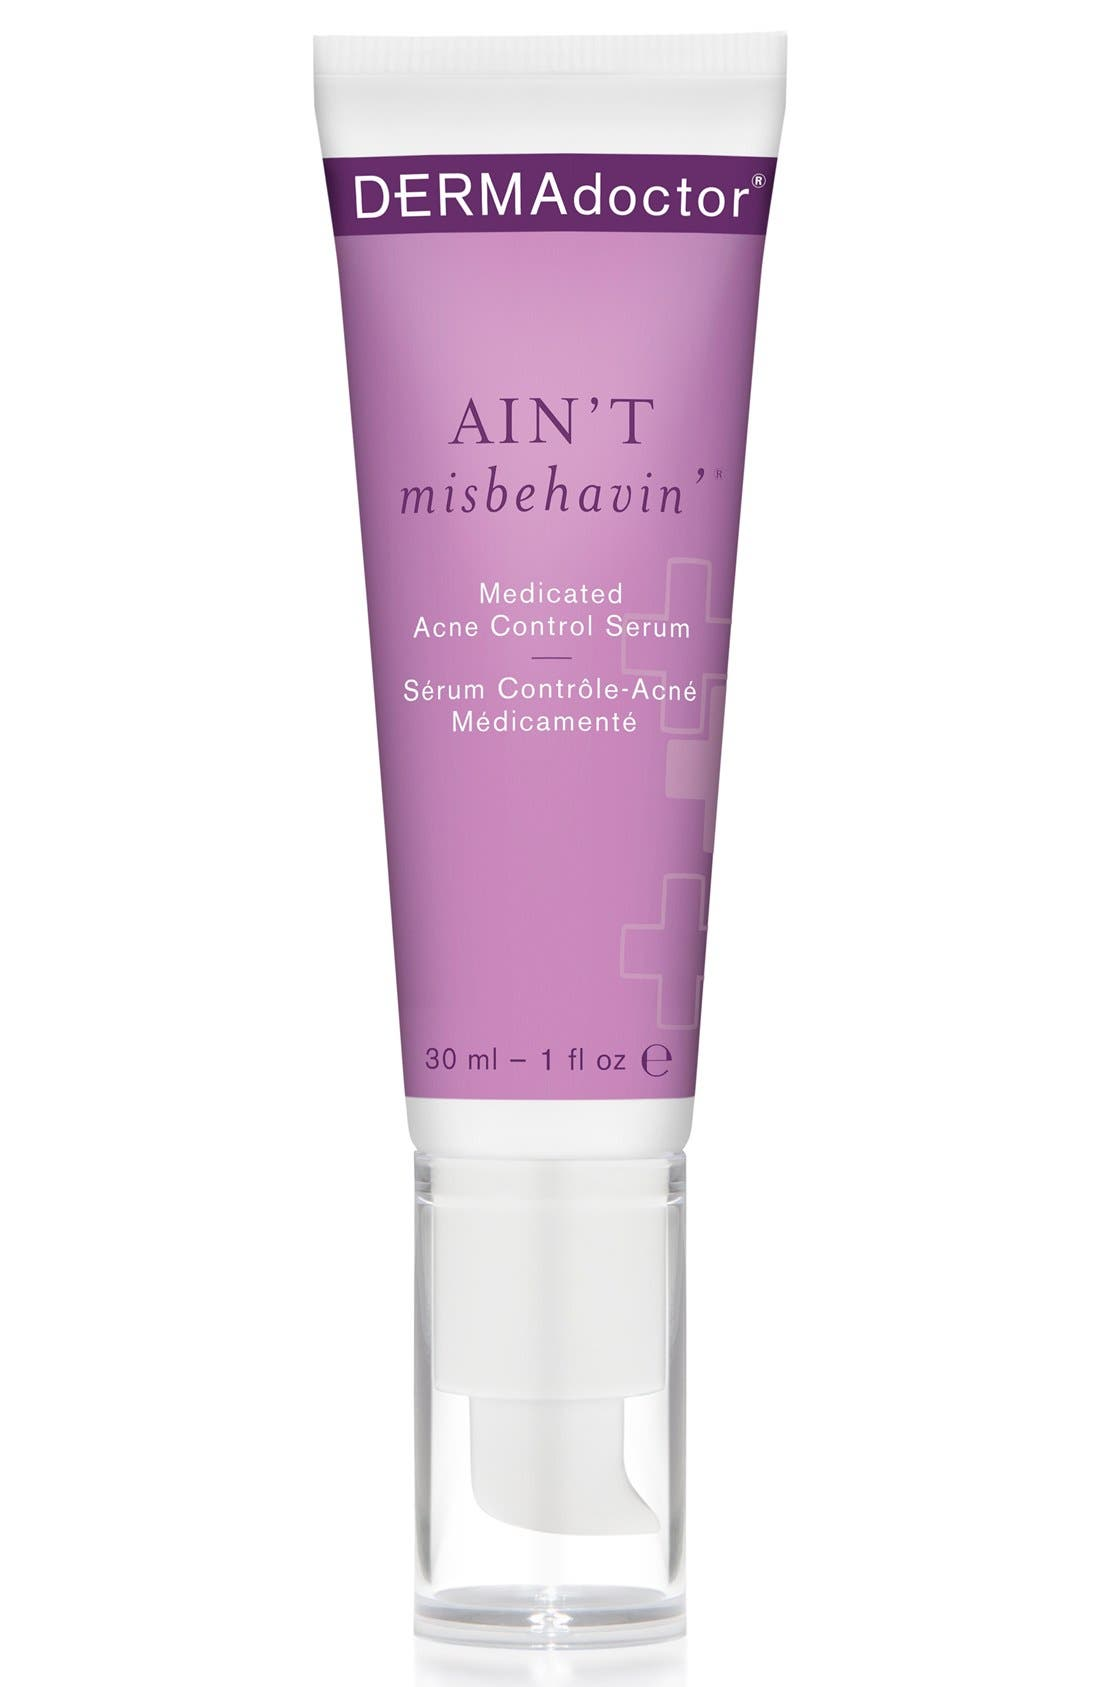 'AIN'T misbehavin'<sup>™</sup>' Medicated Acne Control Serum,                             Main thumbnail 1, color,                             000